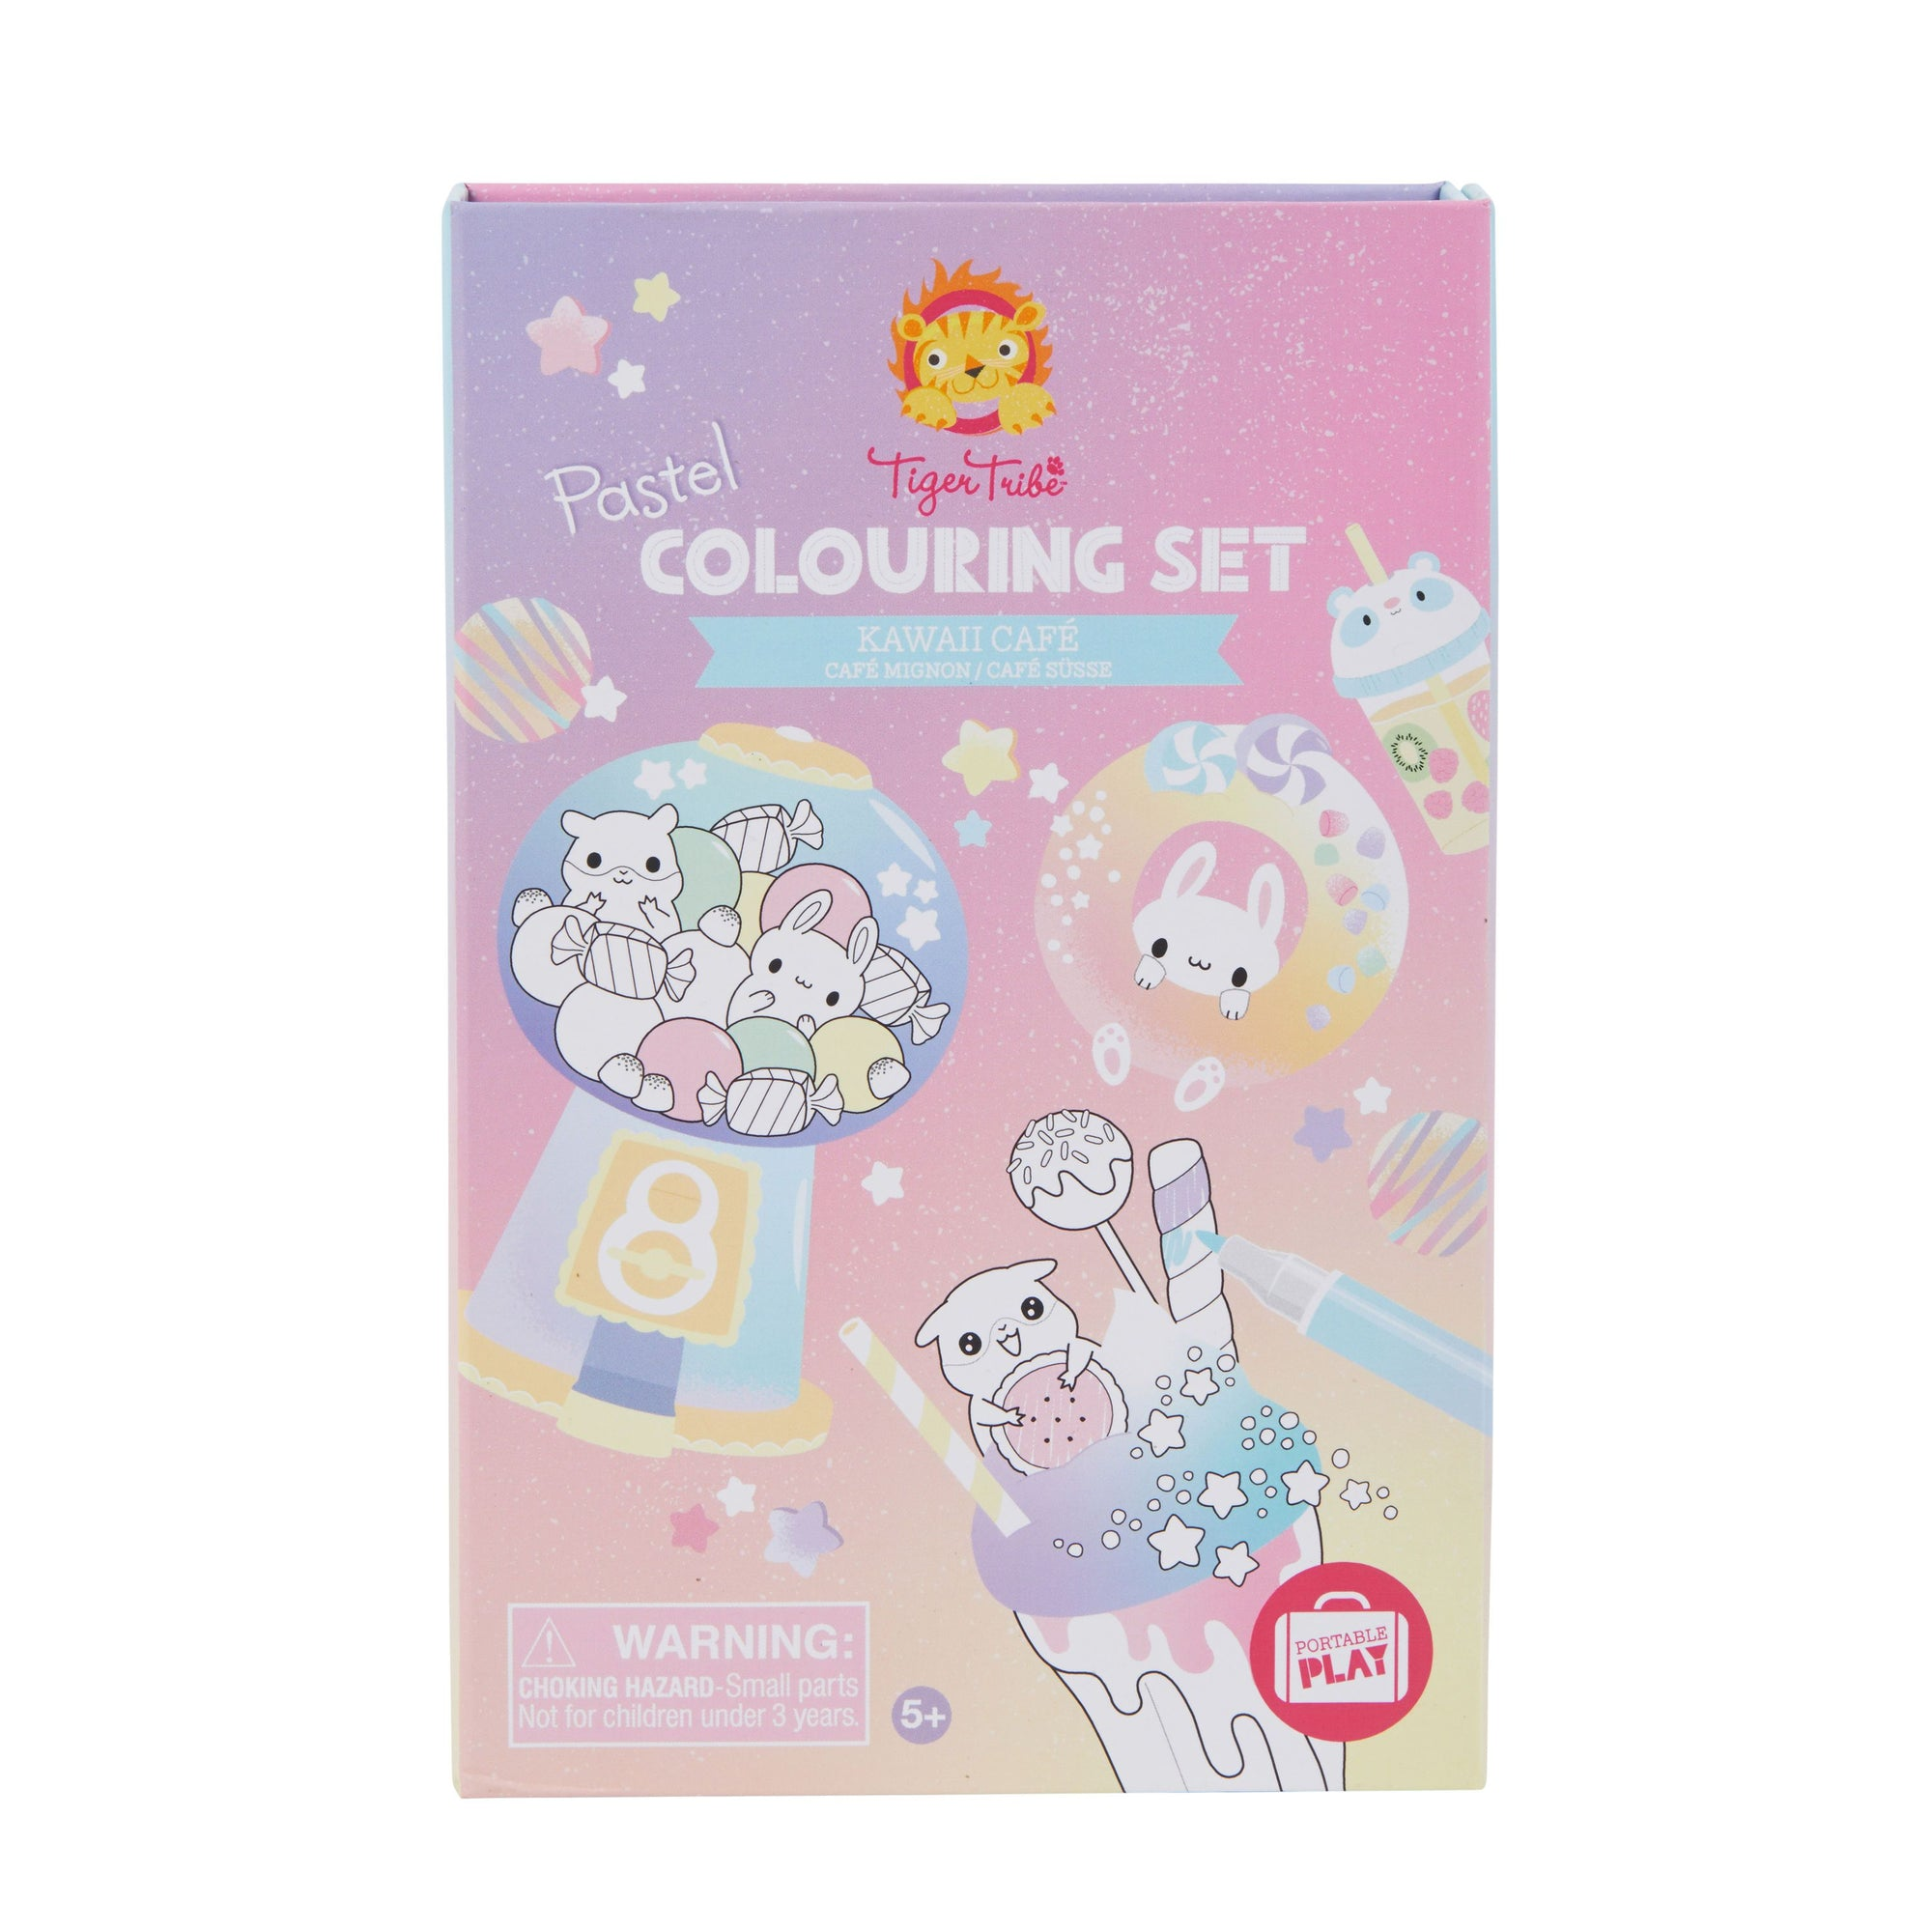 Pastel Colouring Set (Kawaii Café)